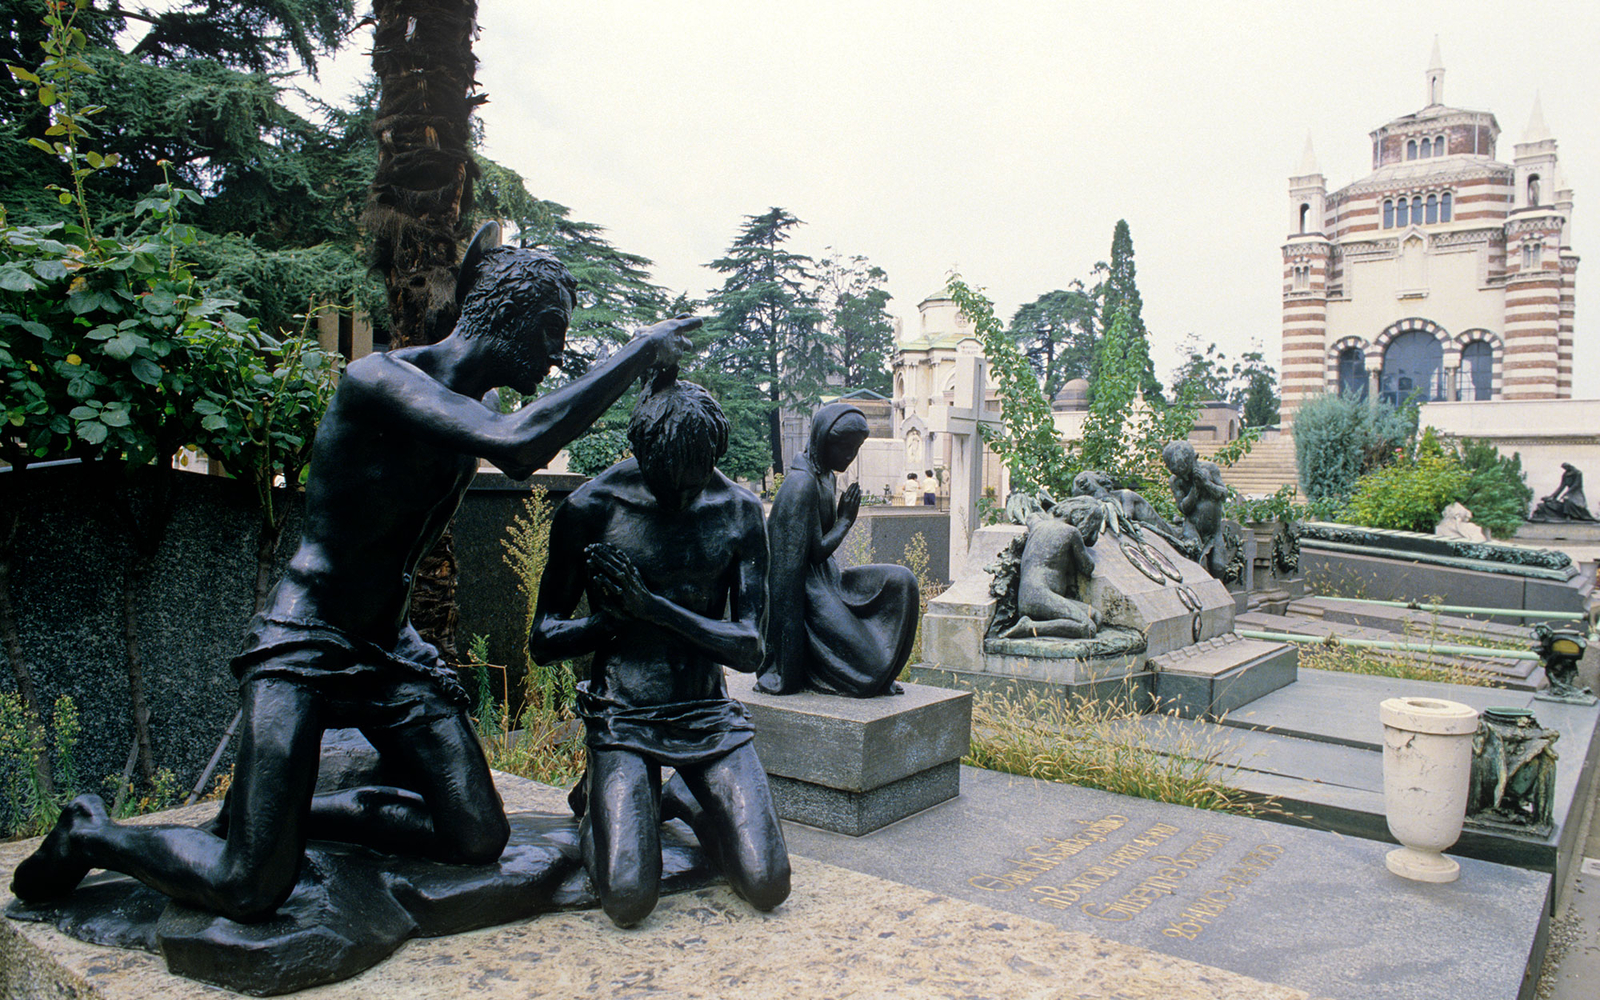 201410-w-worlds-most-beautiful-cemeteries-milans-monumental-cemetery-milan-italy